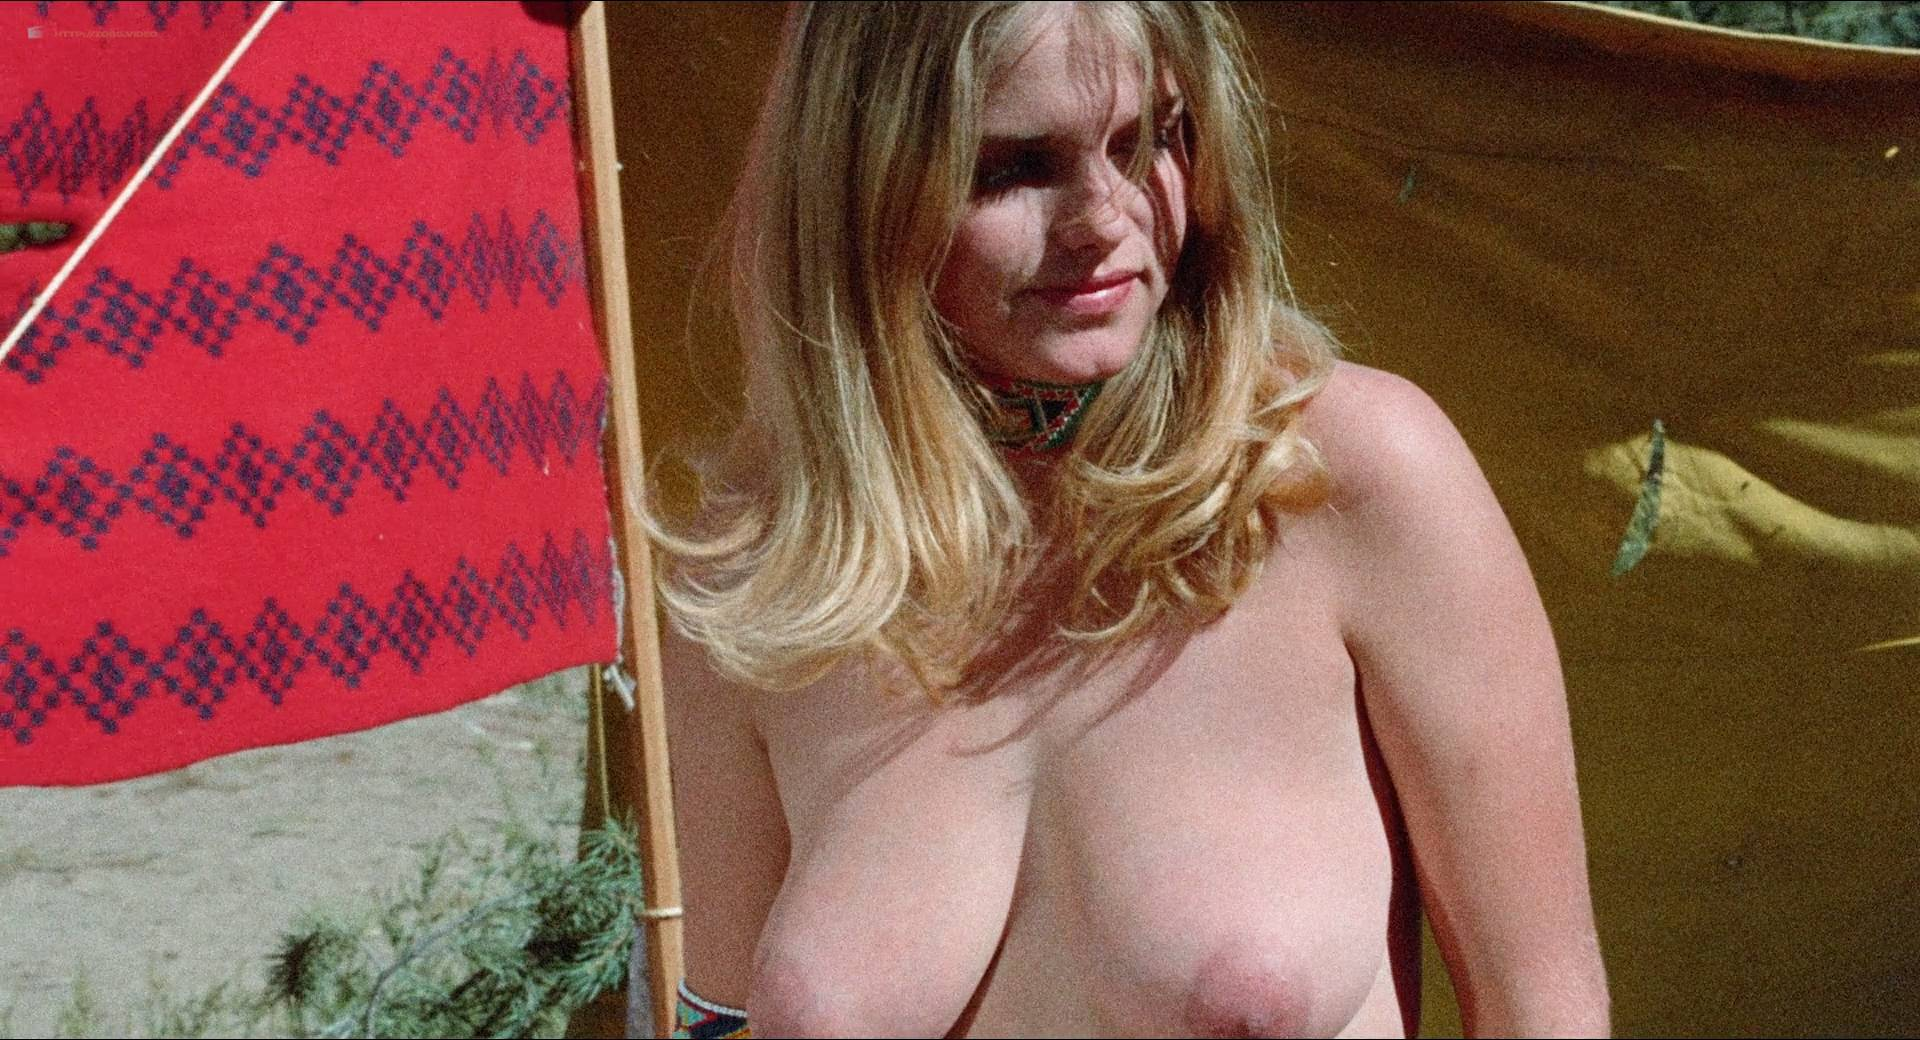 Margie Lanier nude bush sex Rene Bond and others all nude too - Fugitive Girls (1974) HD 1080p BluRay (8)